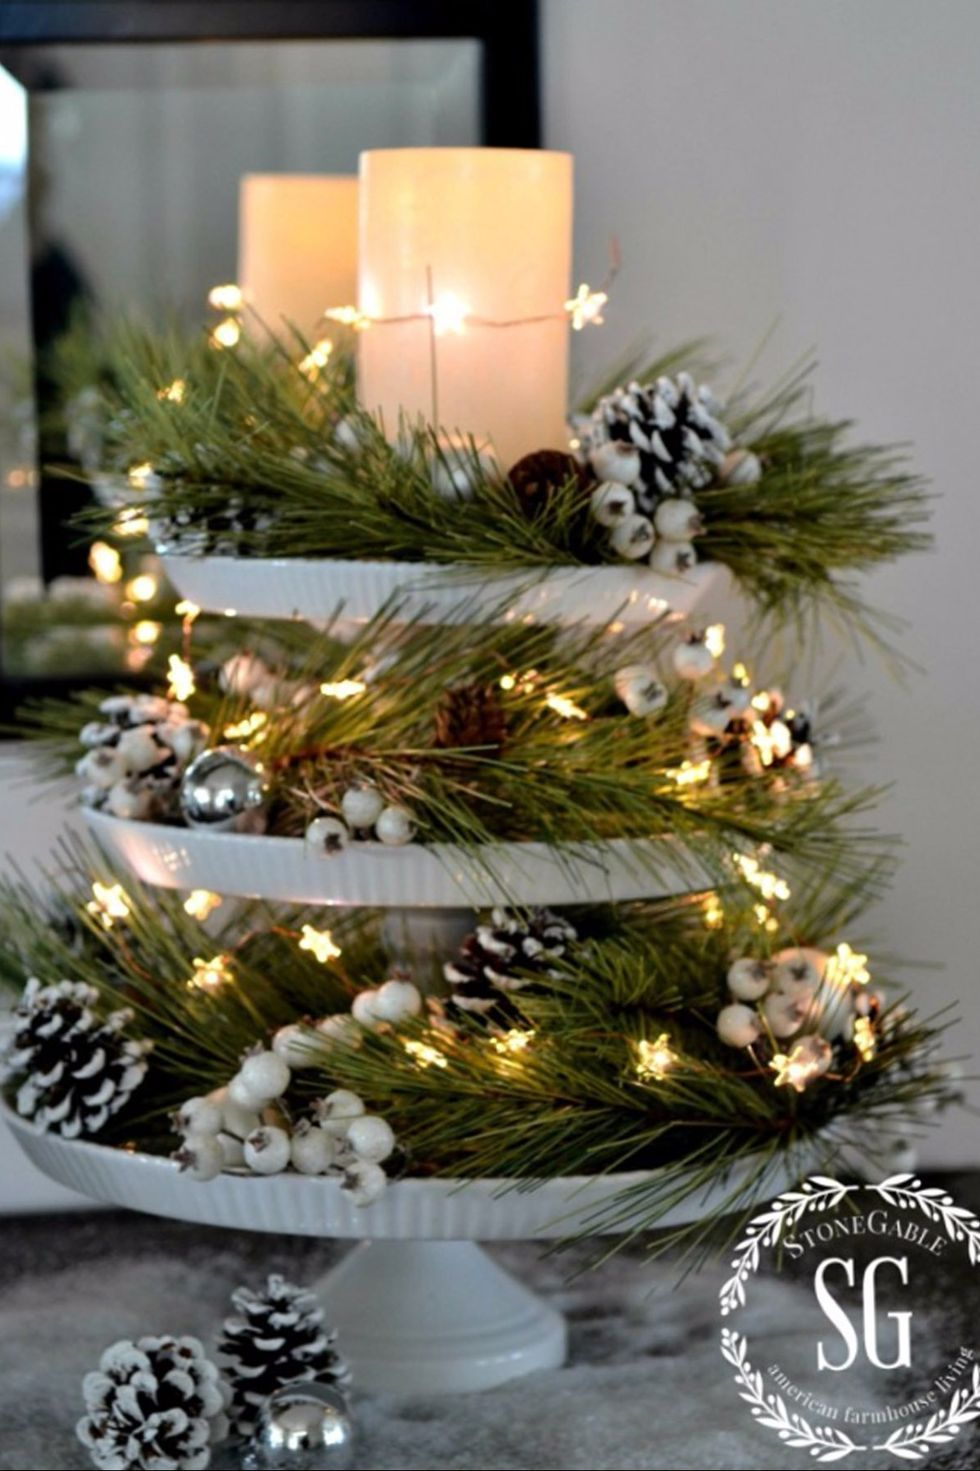 39 Festive Christmas Table Decorations To Brighten Up Your Holiday Table Christmas Table Decorations Centerpiece Christmas Table Decorations Christmas Tree Shop